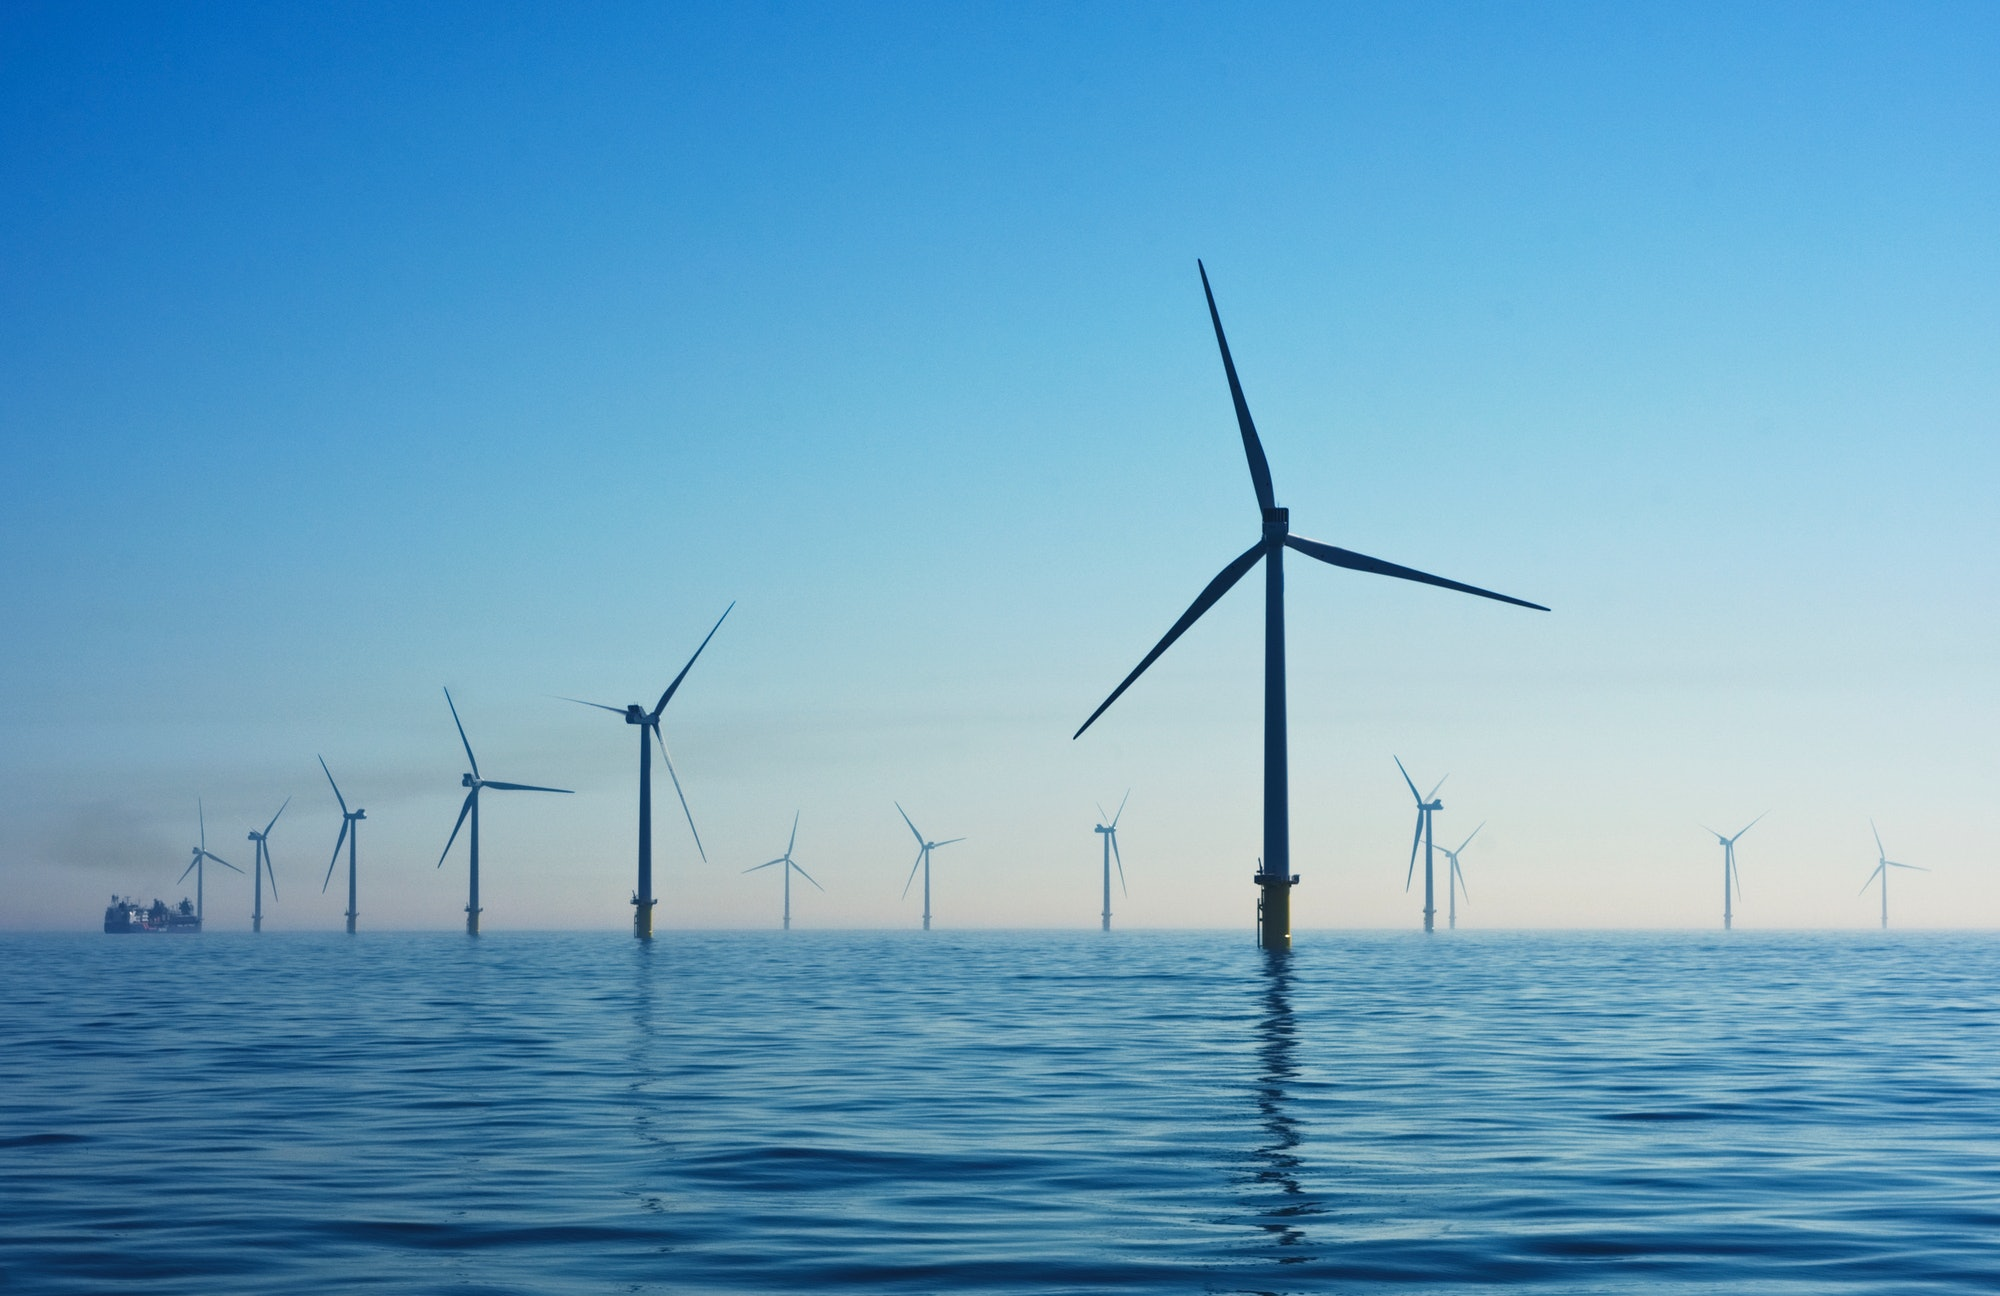 UK offshore wind prices have now fallen below the market price of wholesale electricity